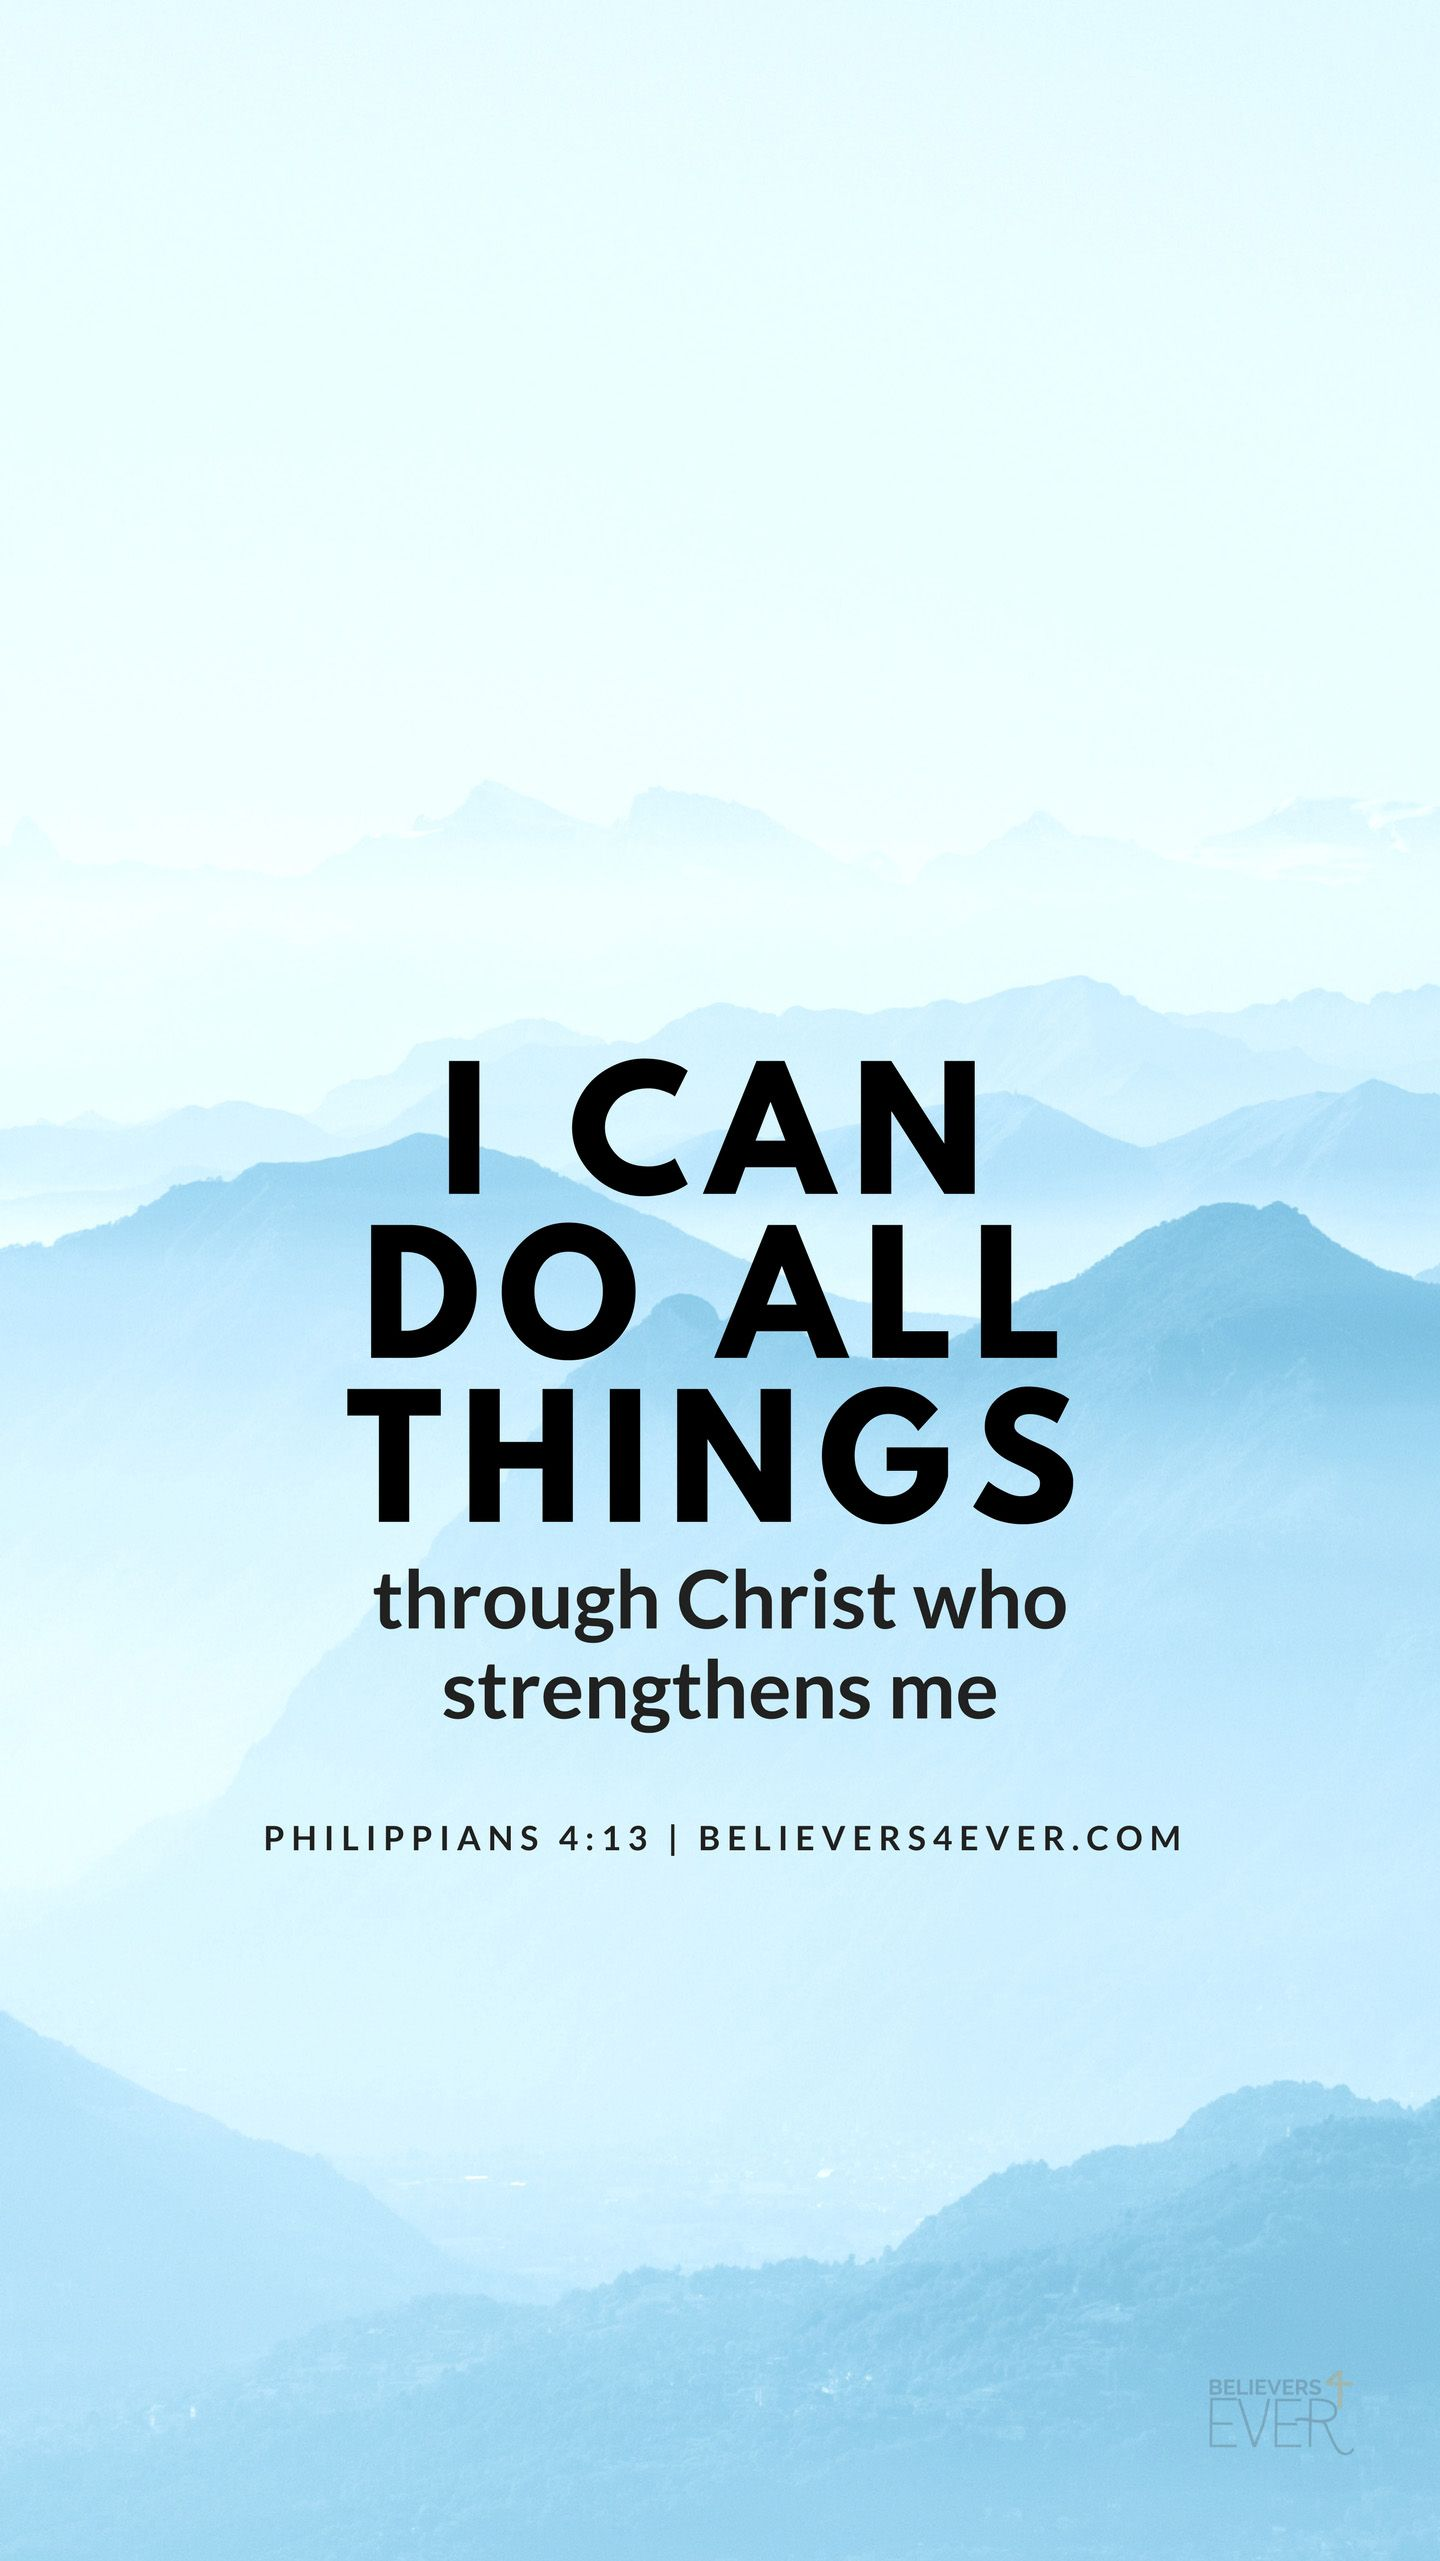 I Can Do All Things Believers4ever Com Bible Quotes Wallpaper Bible Verse Wallpaper Bible Quotes